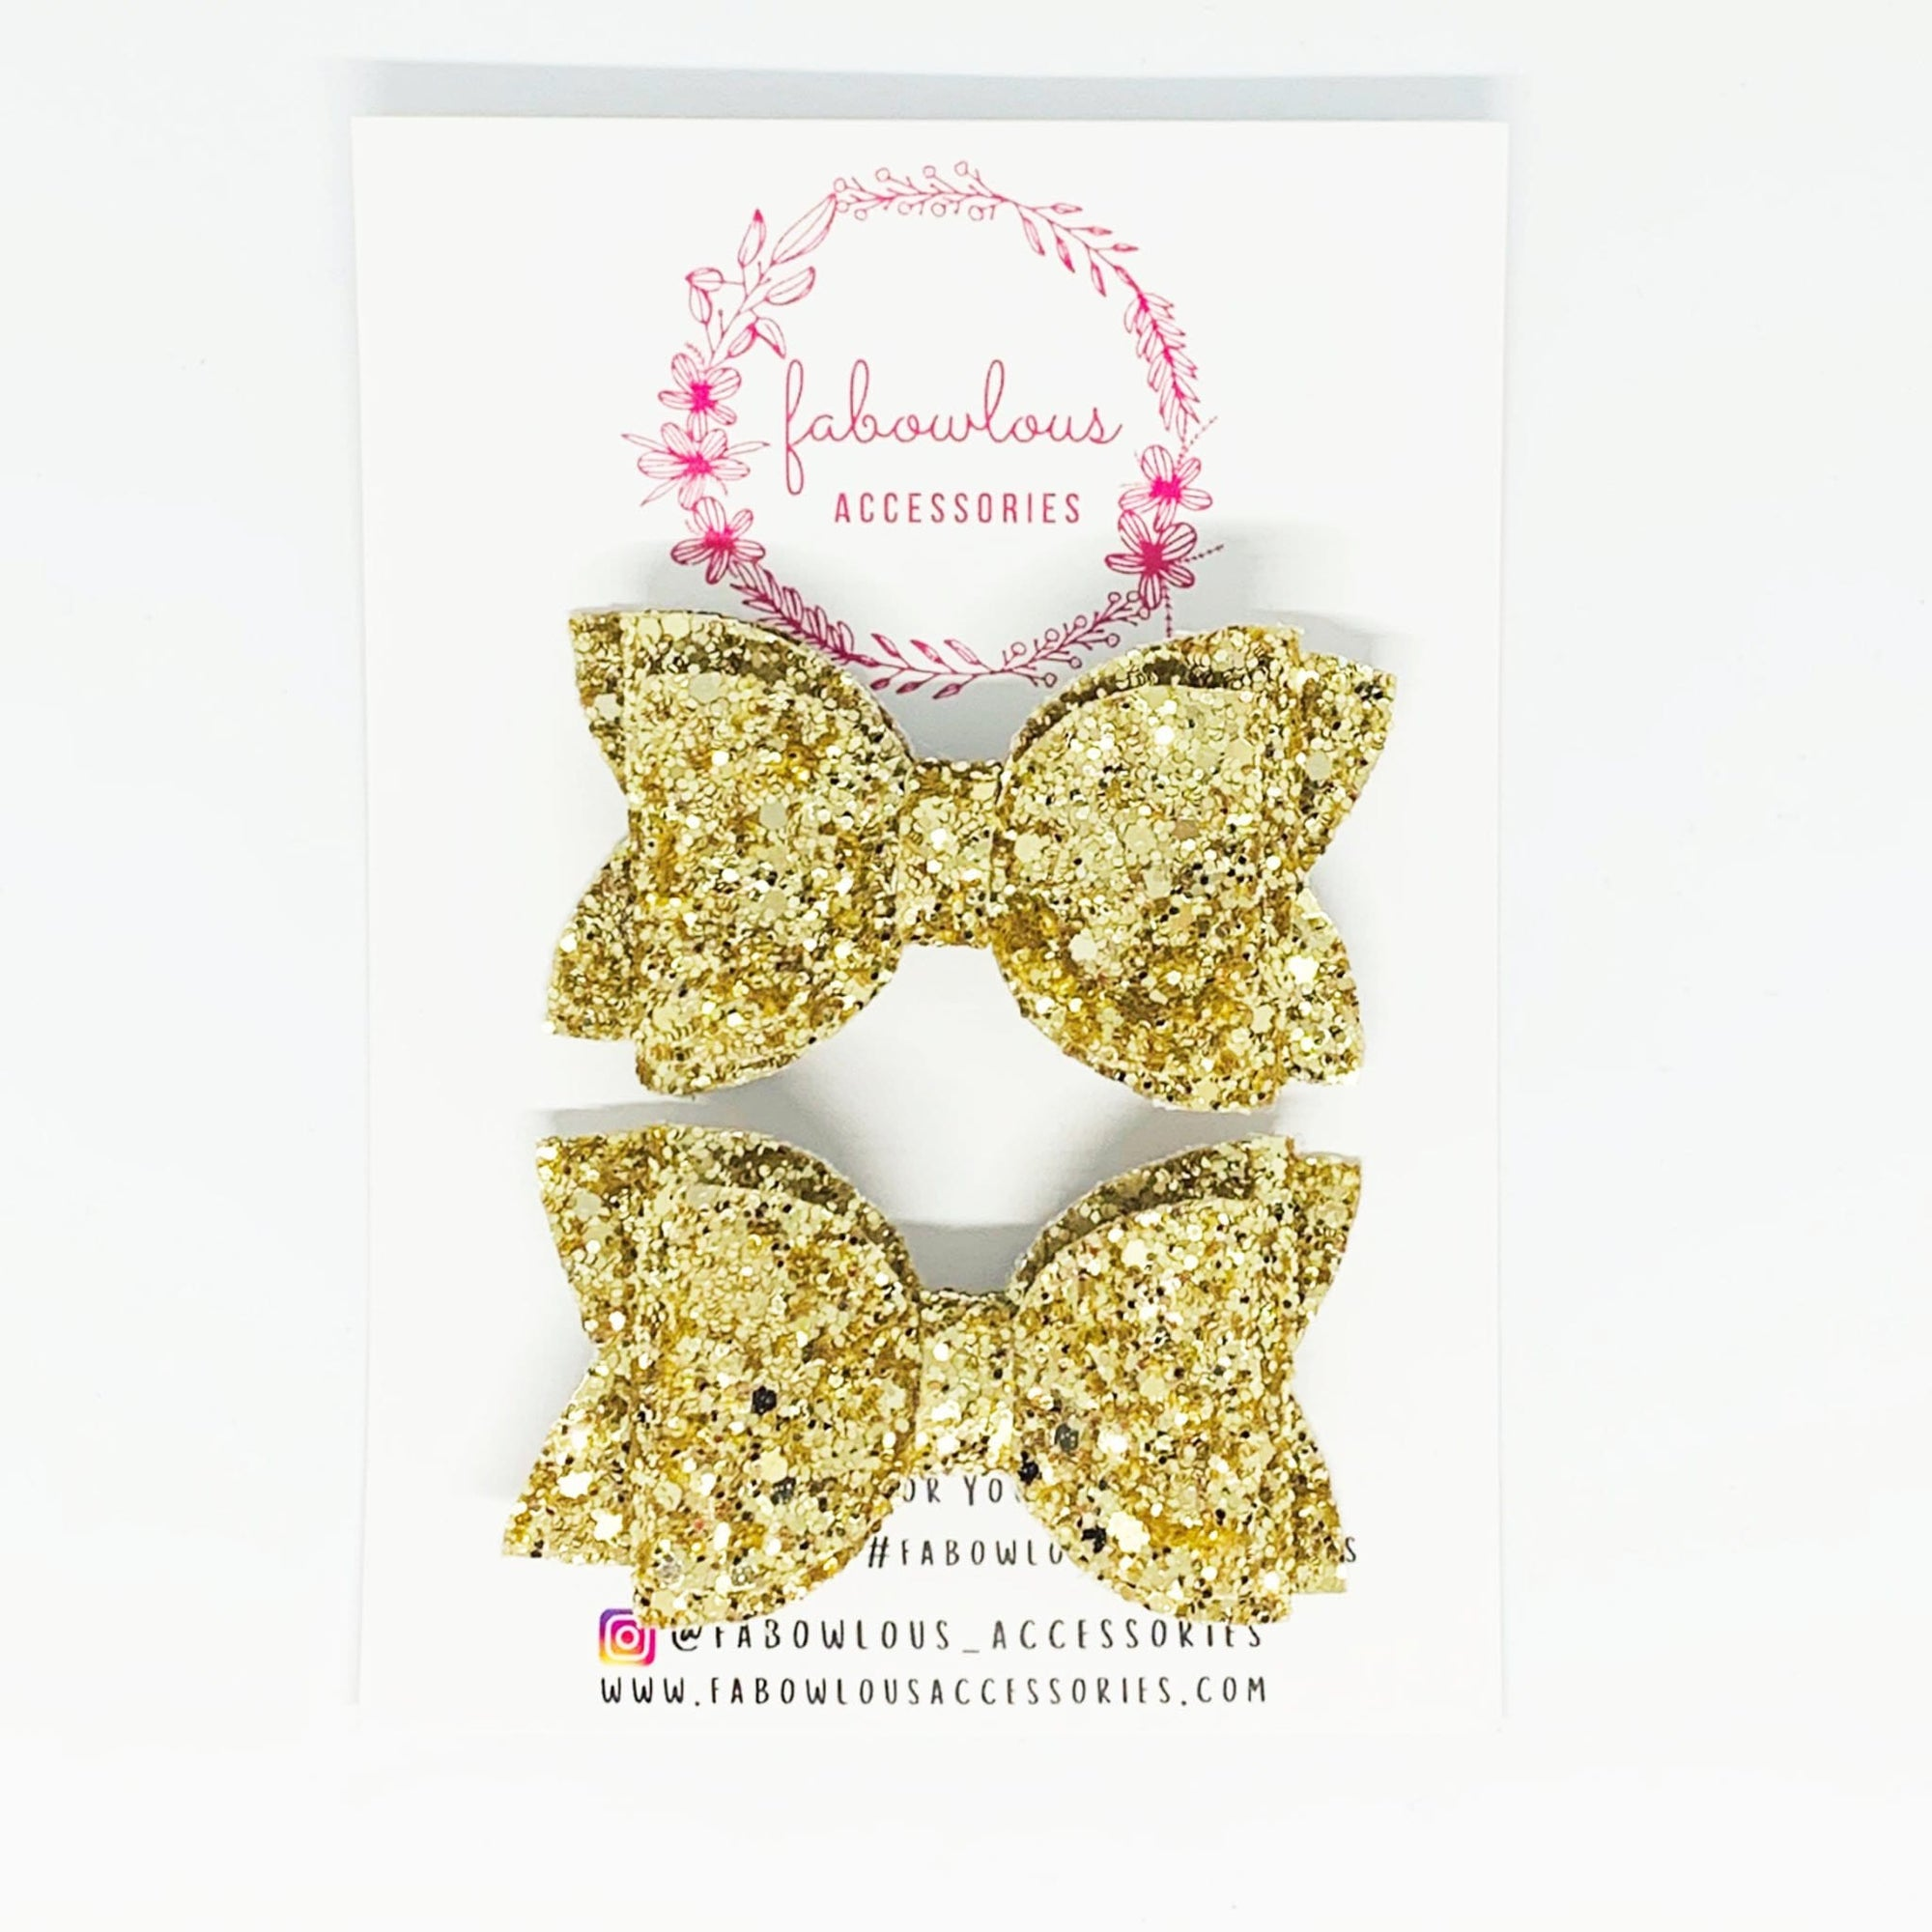 Fabowlous Accessories Glitter Pigtail Set